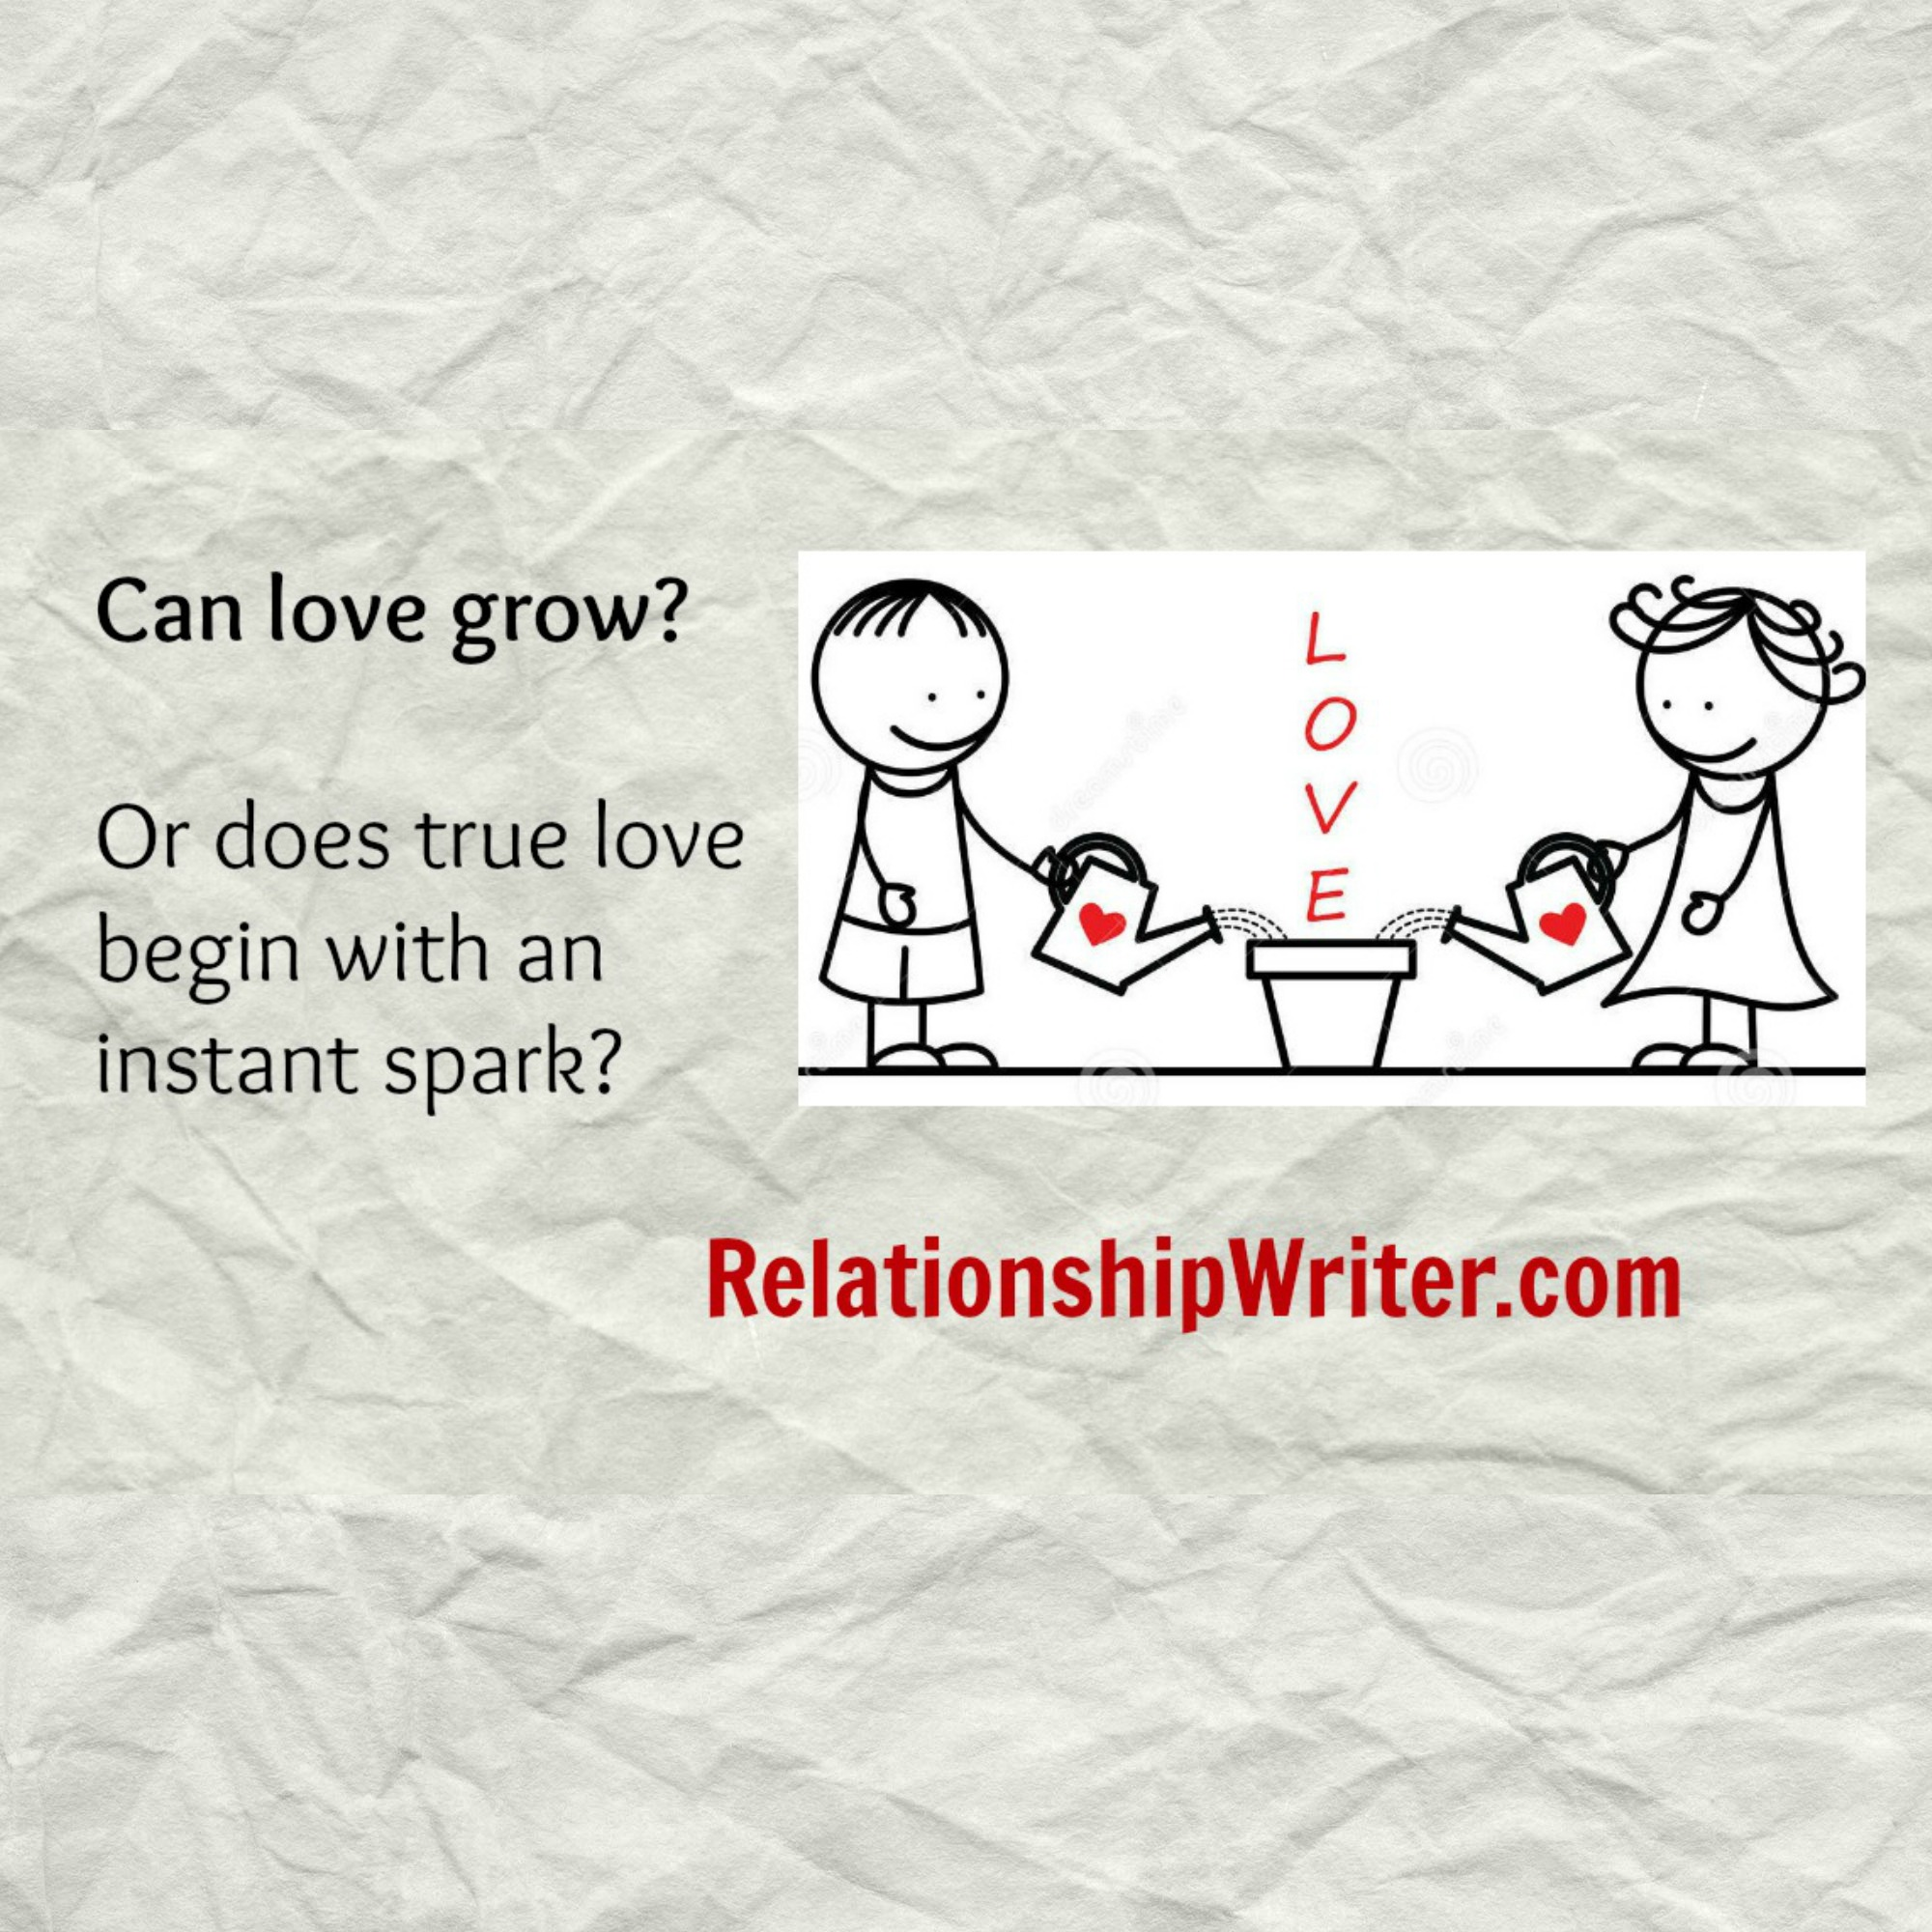 Can love grow? Or does true love begin with an instant spark?